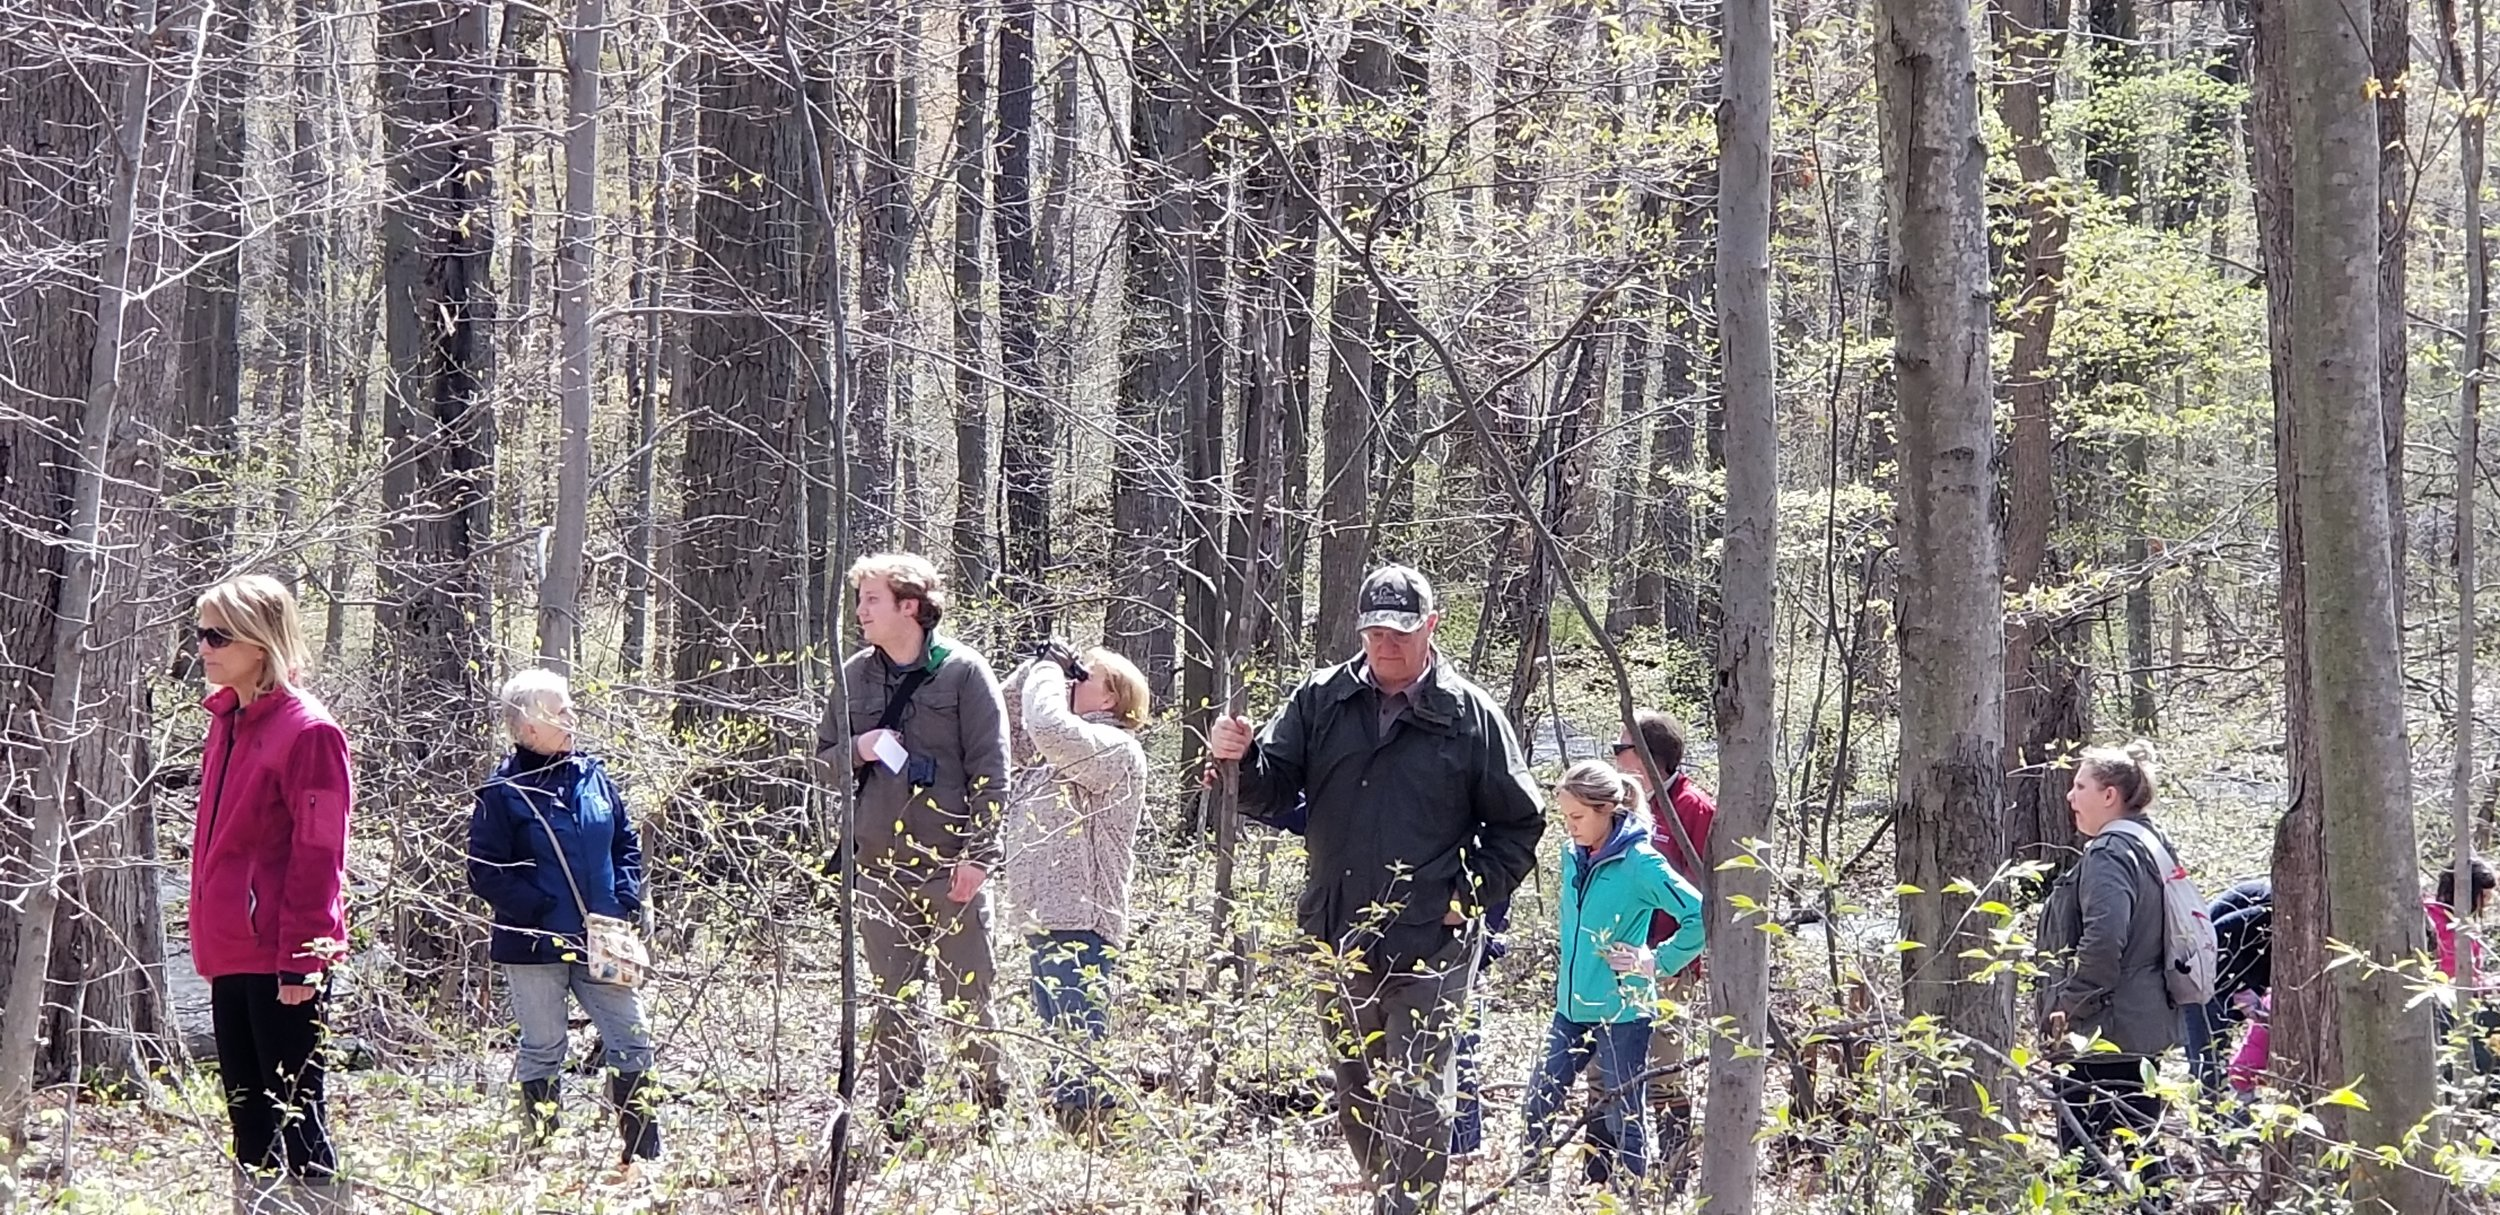 Anchor Bay Woods Preserve - Dedication Hike on May 4, 2019